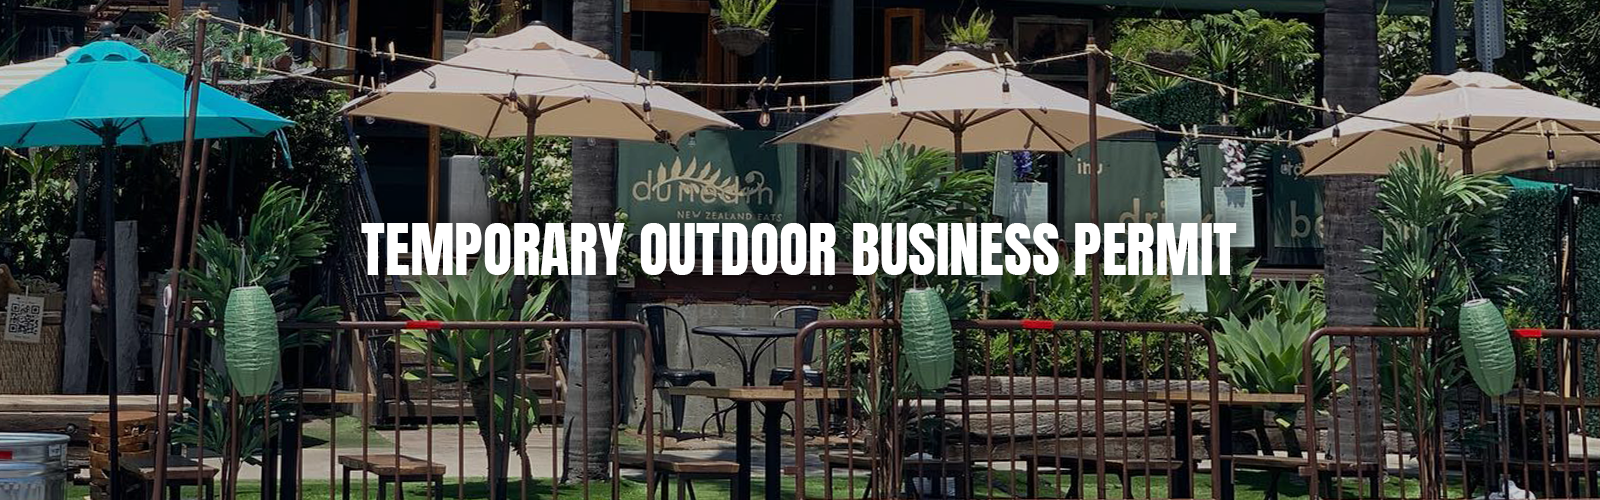 Temporary Outdoor Business Permit